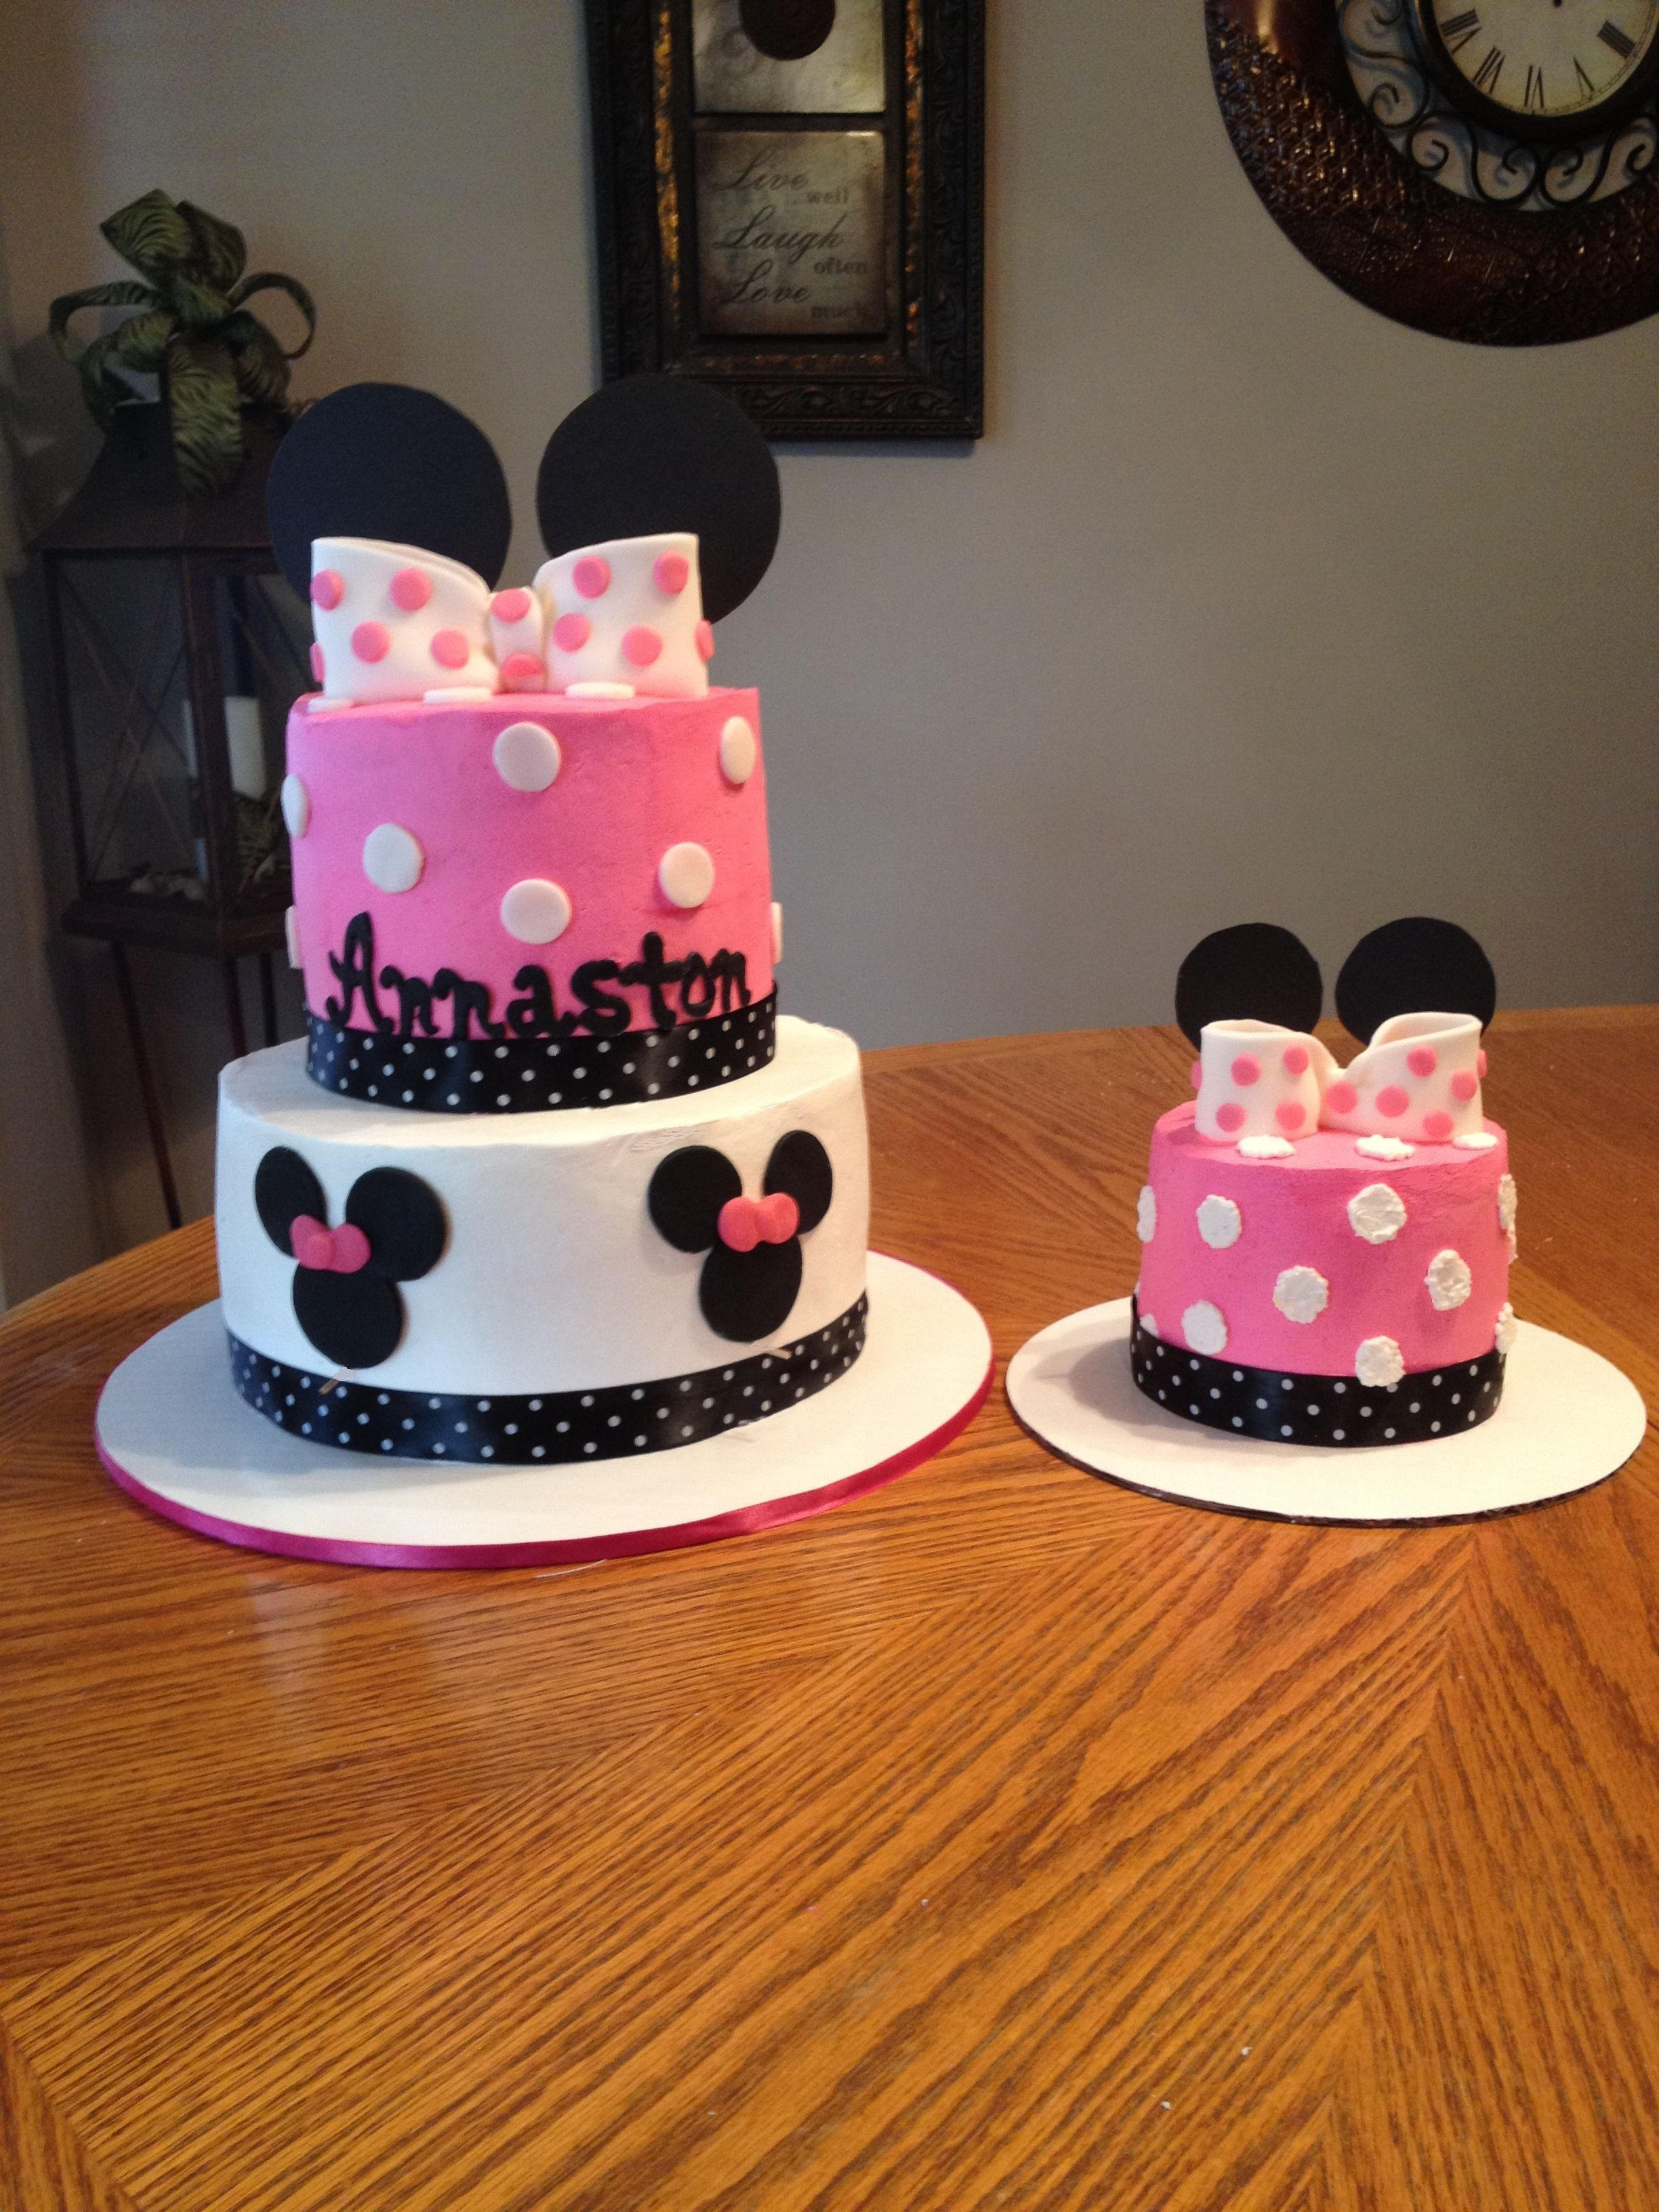 Astounding Minnie Mouse Heres Another Minnie Mouse First Birthday Cake W Personalised Birthday Cards Cominlily Jamesorg